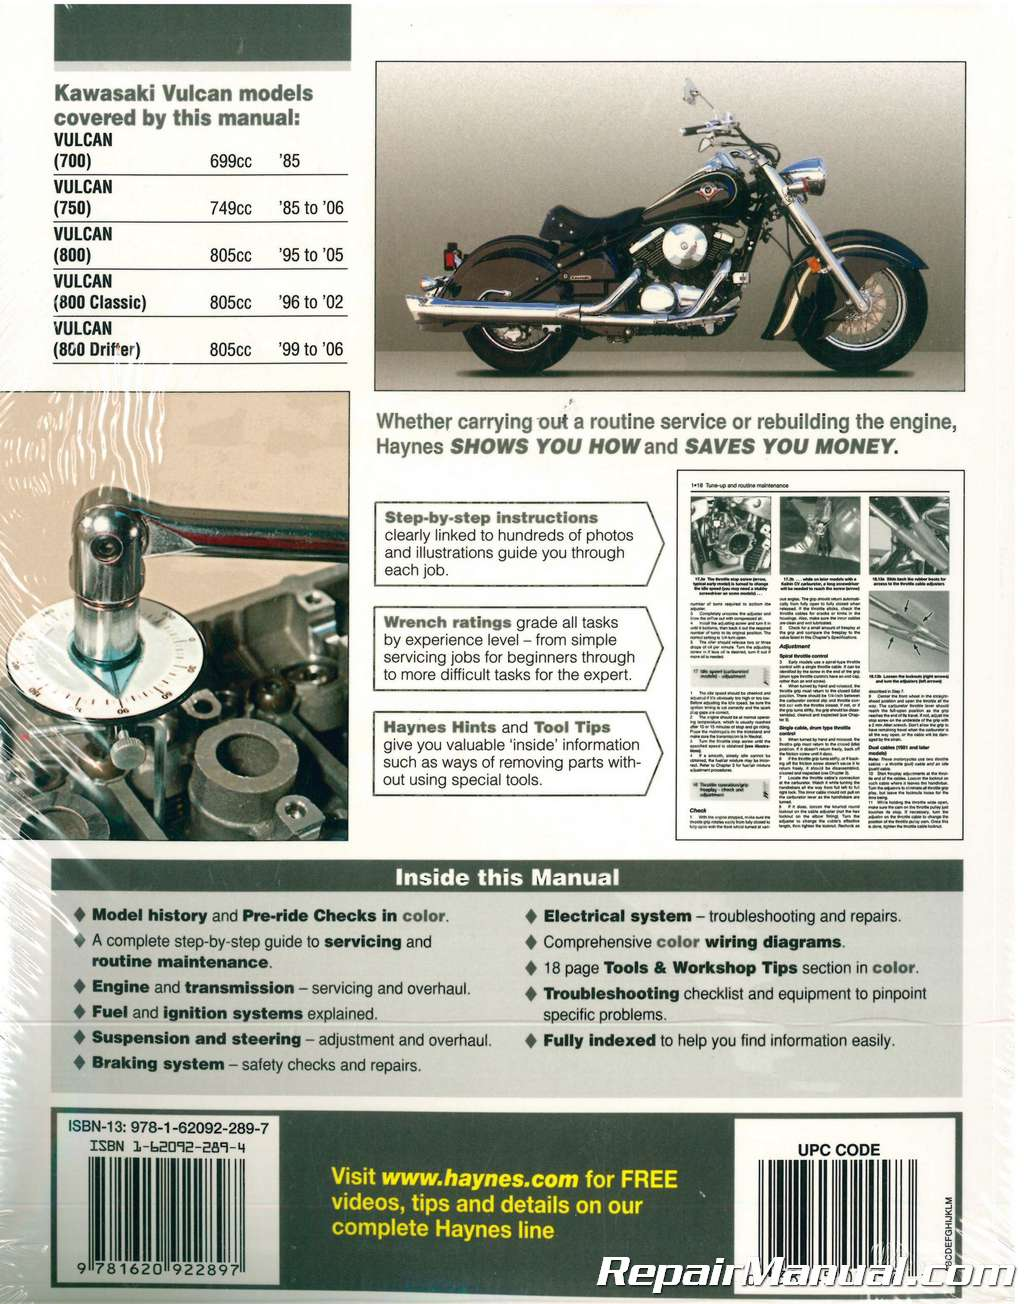 Electrical Diagram For Kawasaki Vulcan 750 | Wiring Diagram on